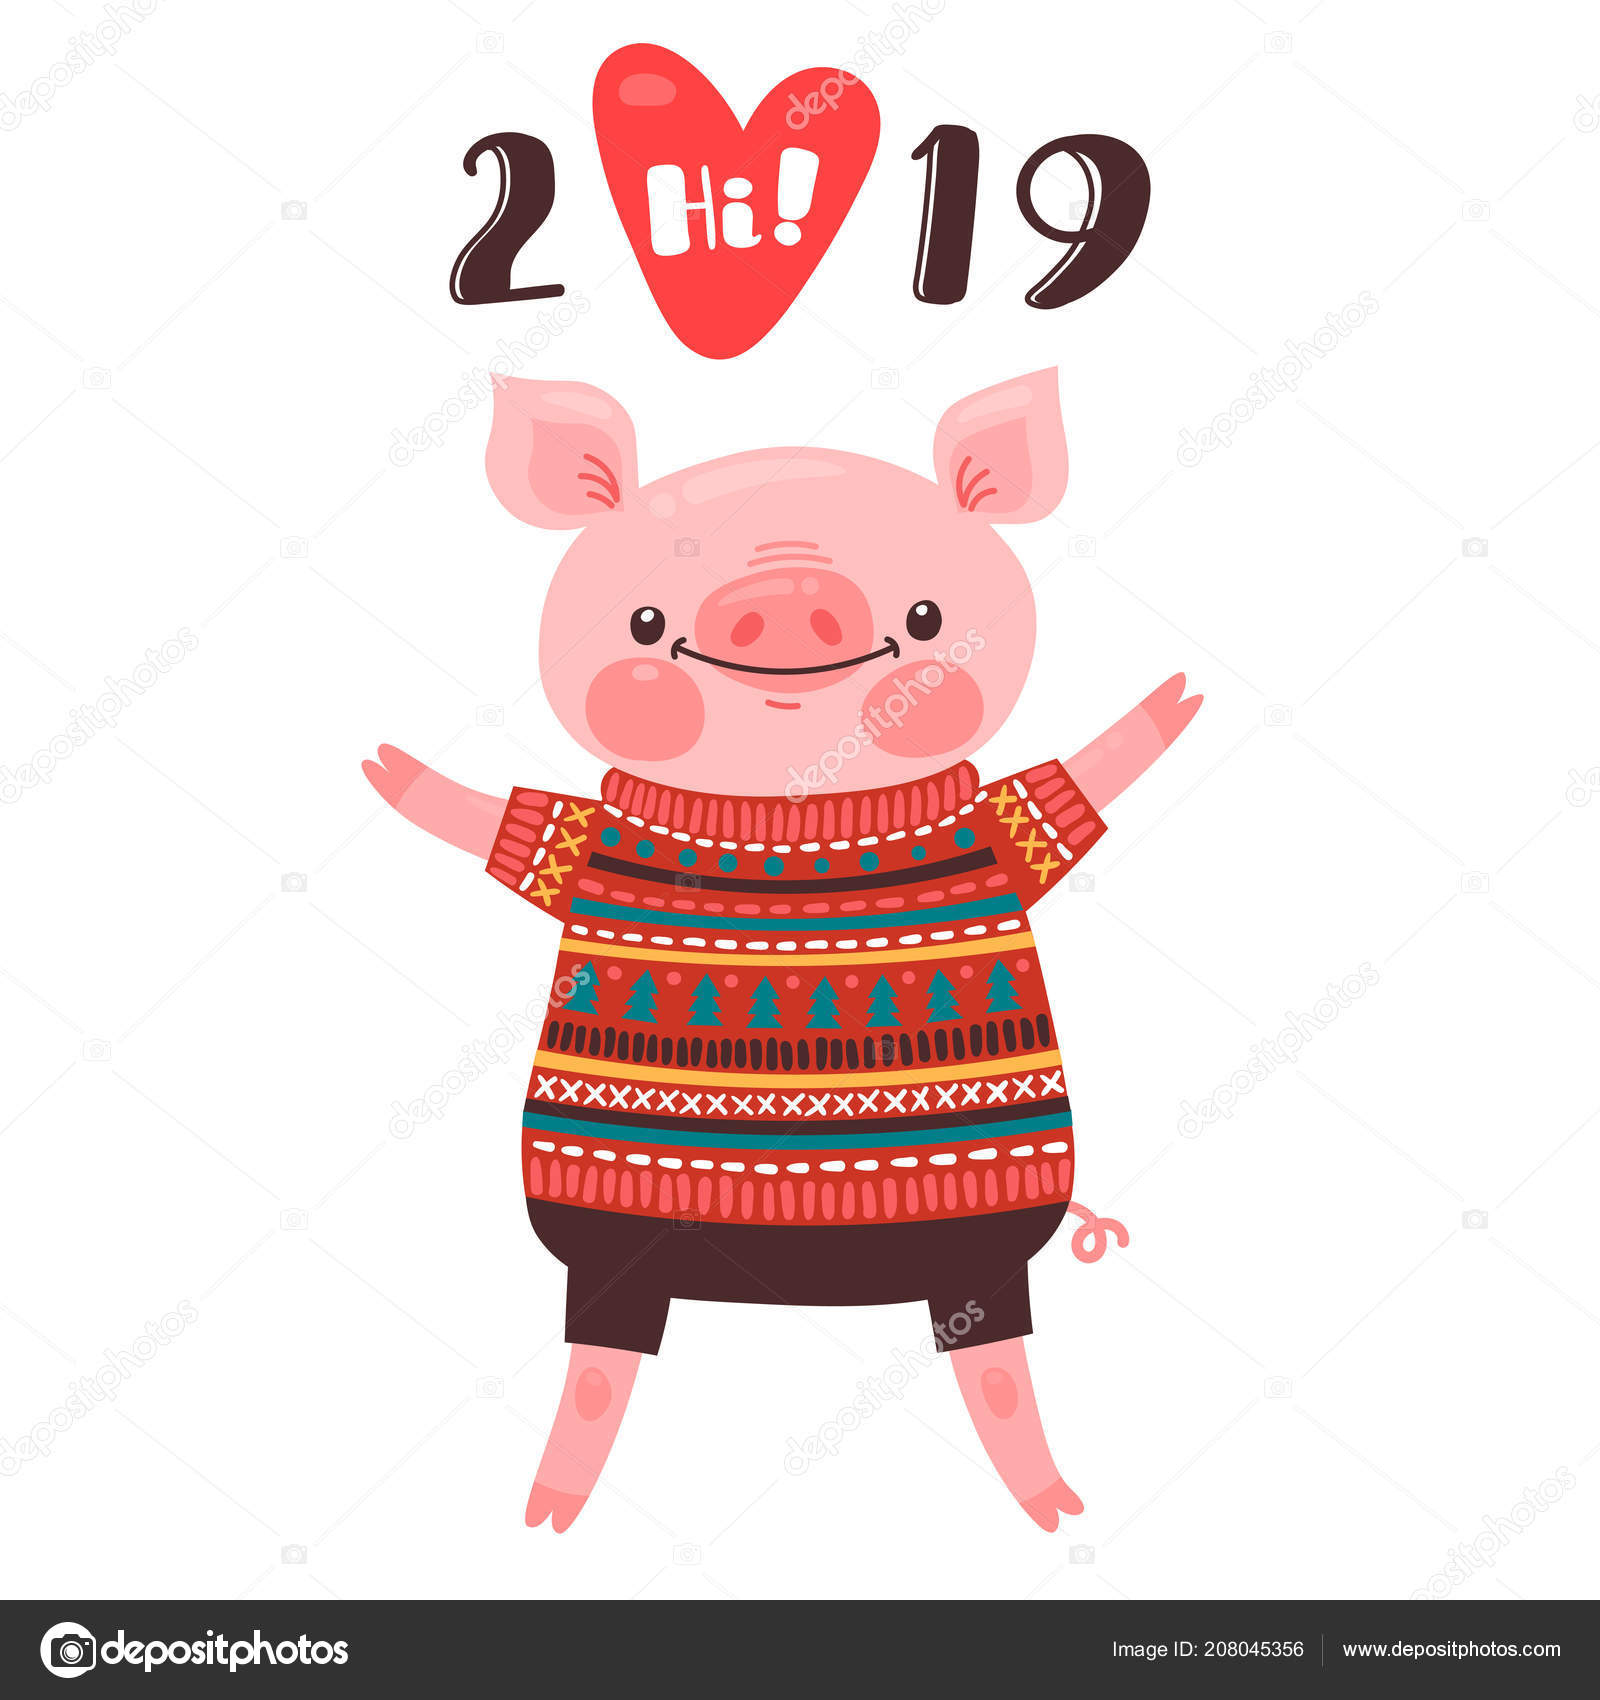 depositphotos_208045356 stock illustration 2019 happy new year cardjpg